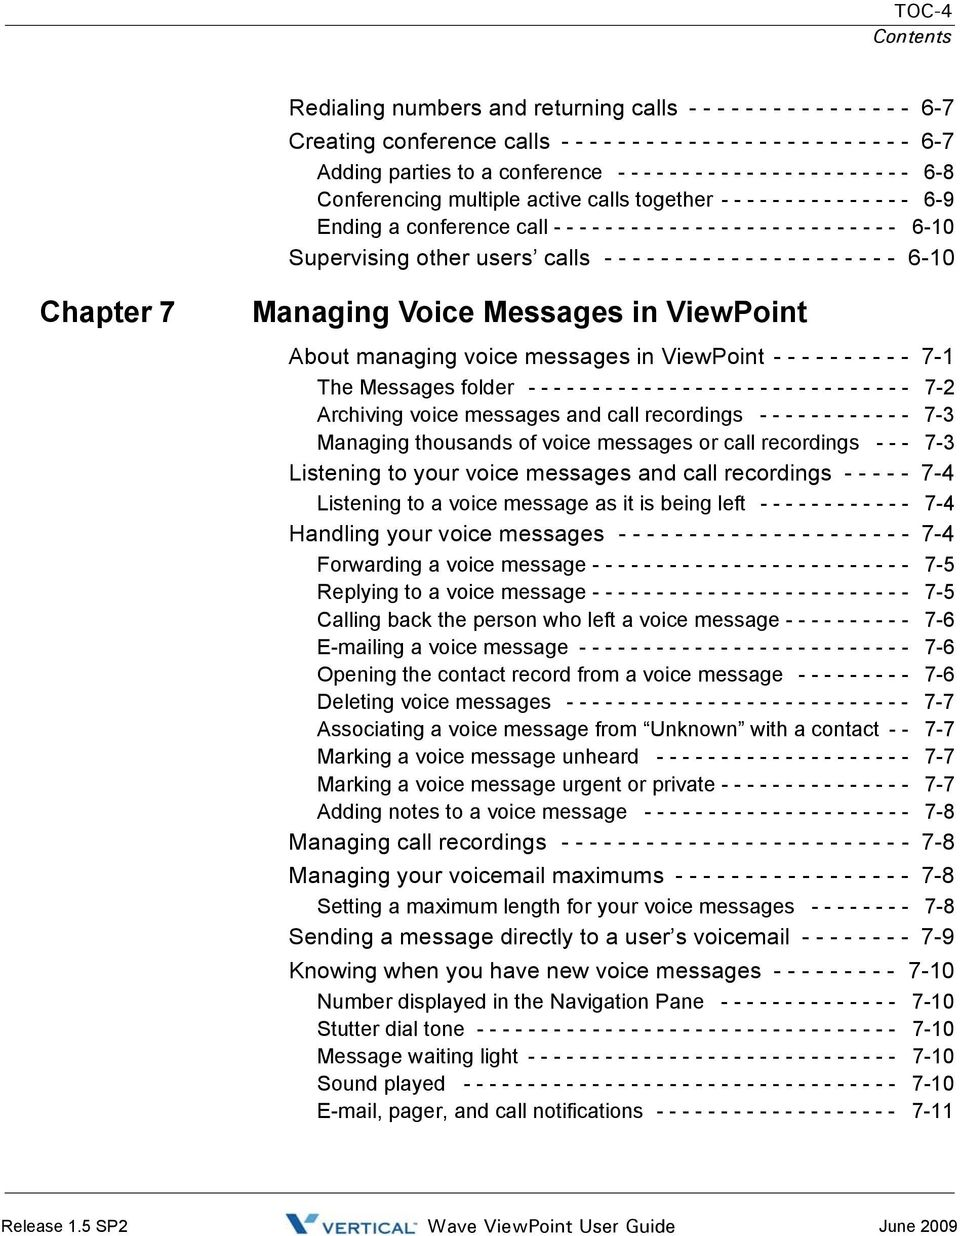 - - - - 6-10 Supervising other users calls - - - - - - - - - - - - - - - - - - - - - 6-10 Chapter 7 Managing Voice Messages in ViewPoint About managing voice messages in ViewPoint - - - - - - - - - -